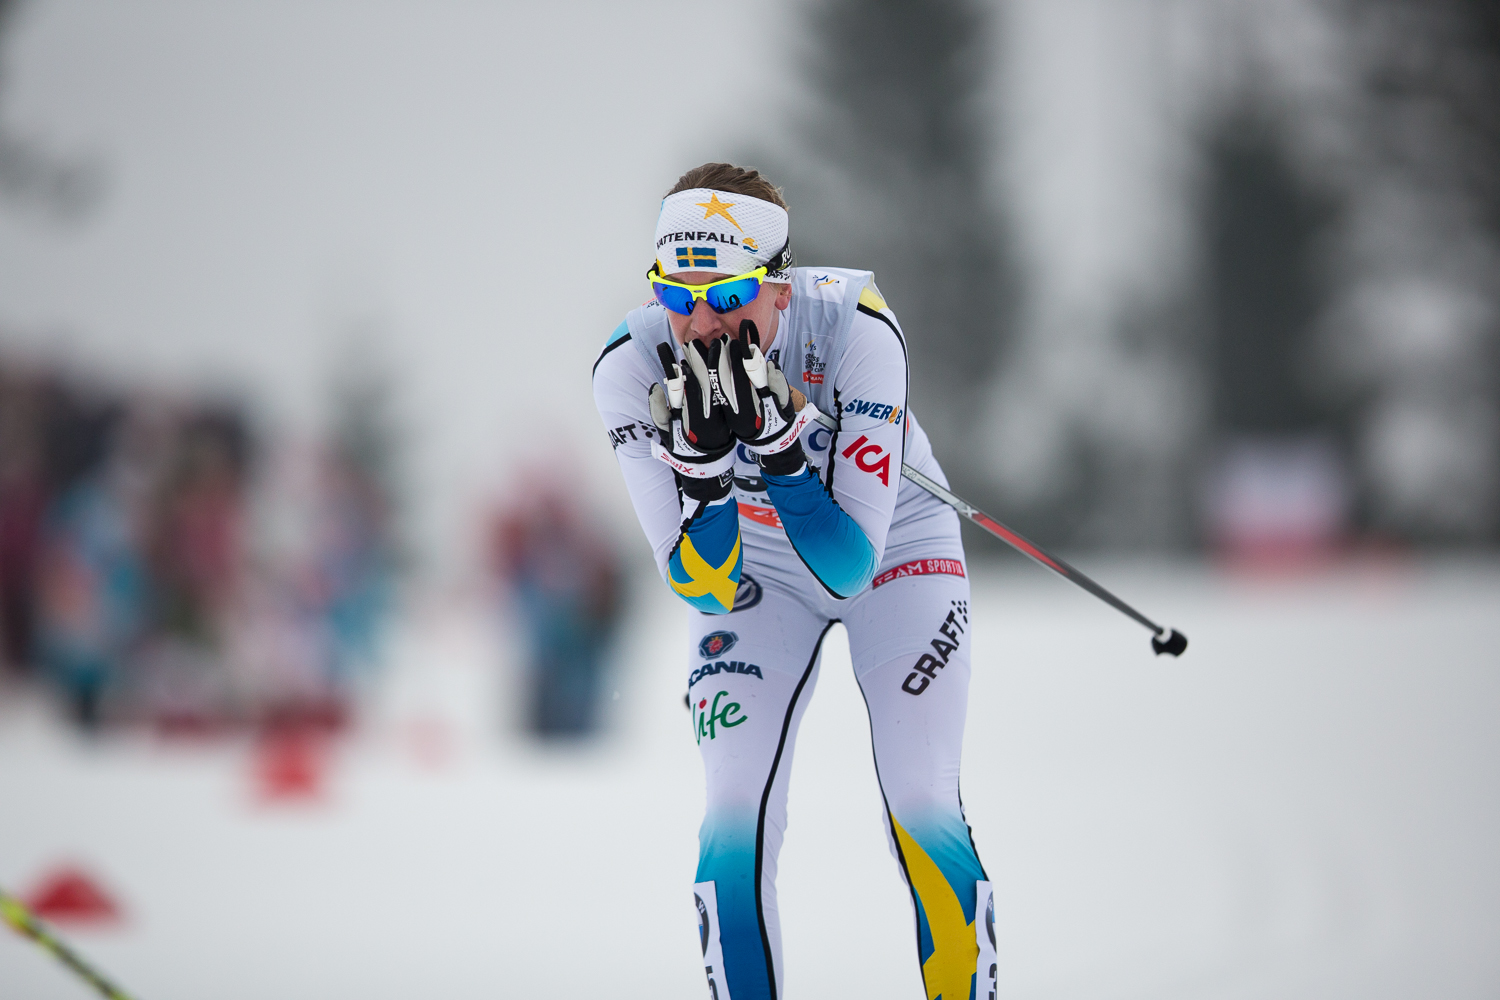 A swedish competitor heads into the Holmenkollen arena.